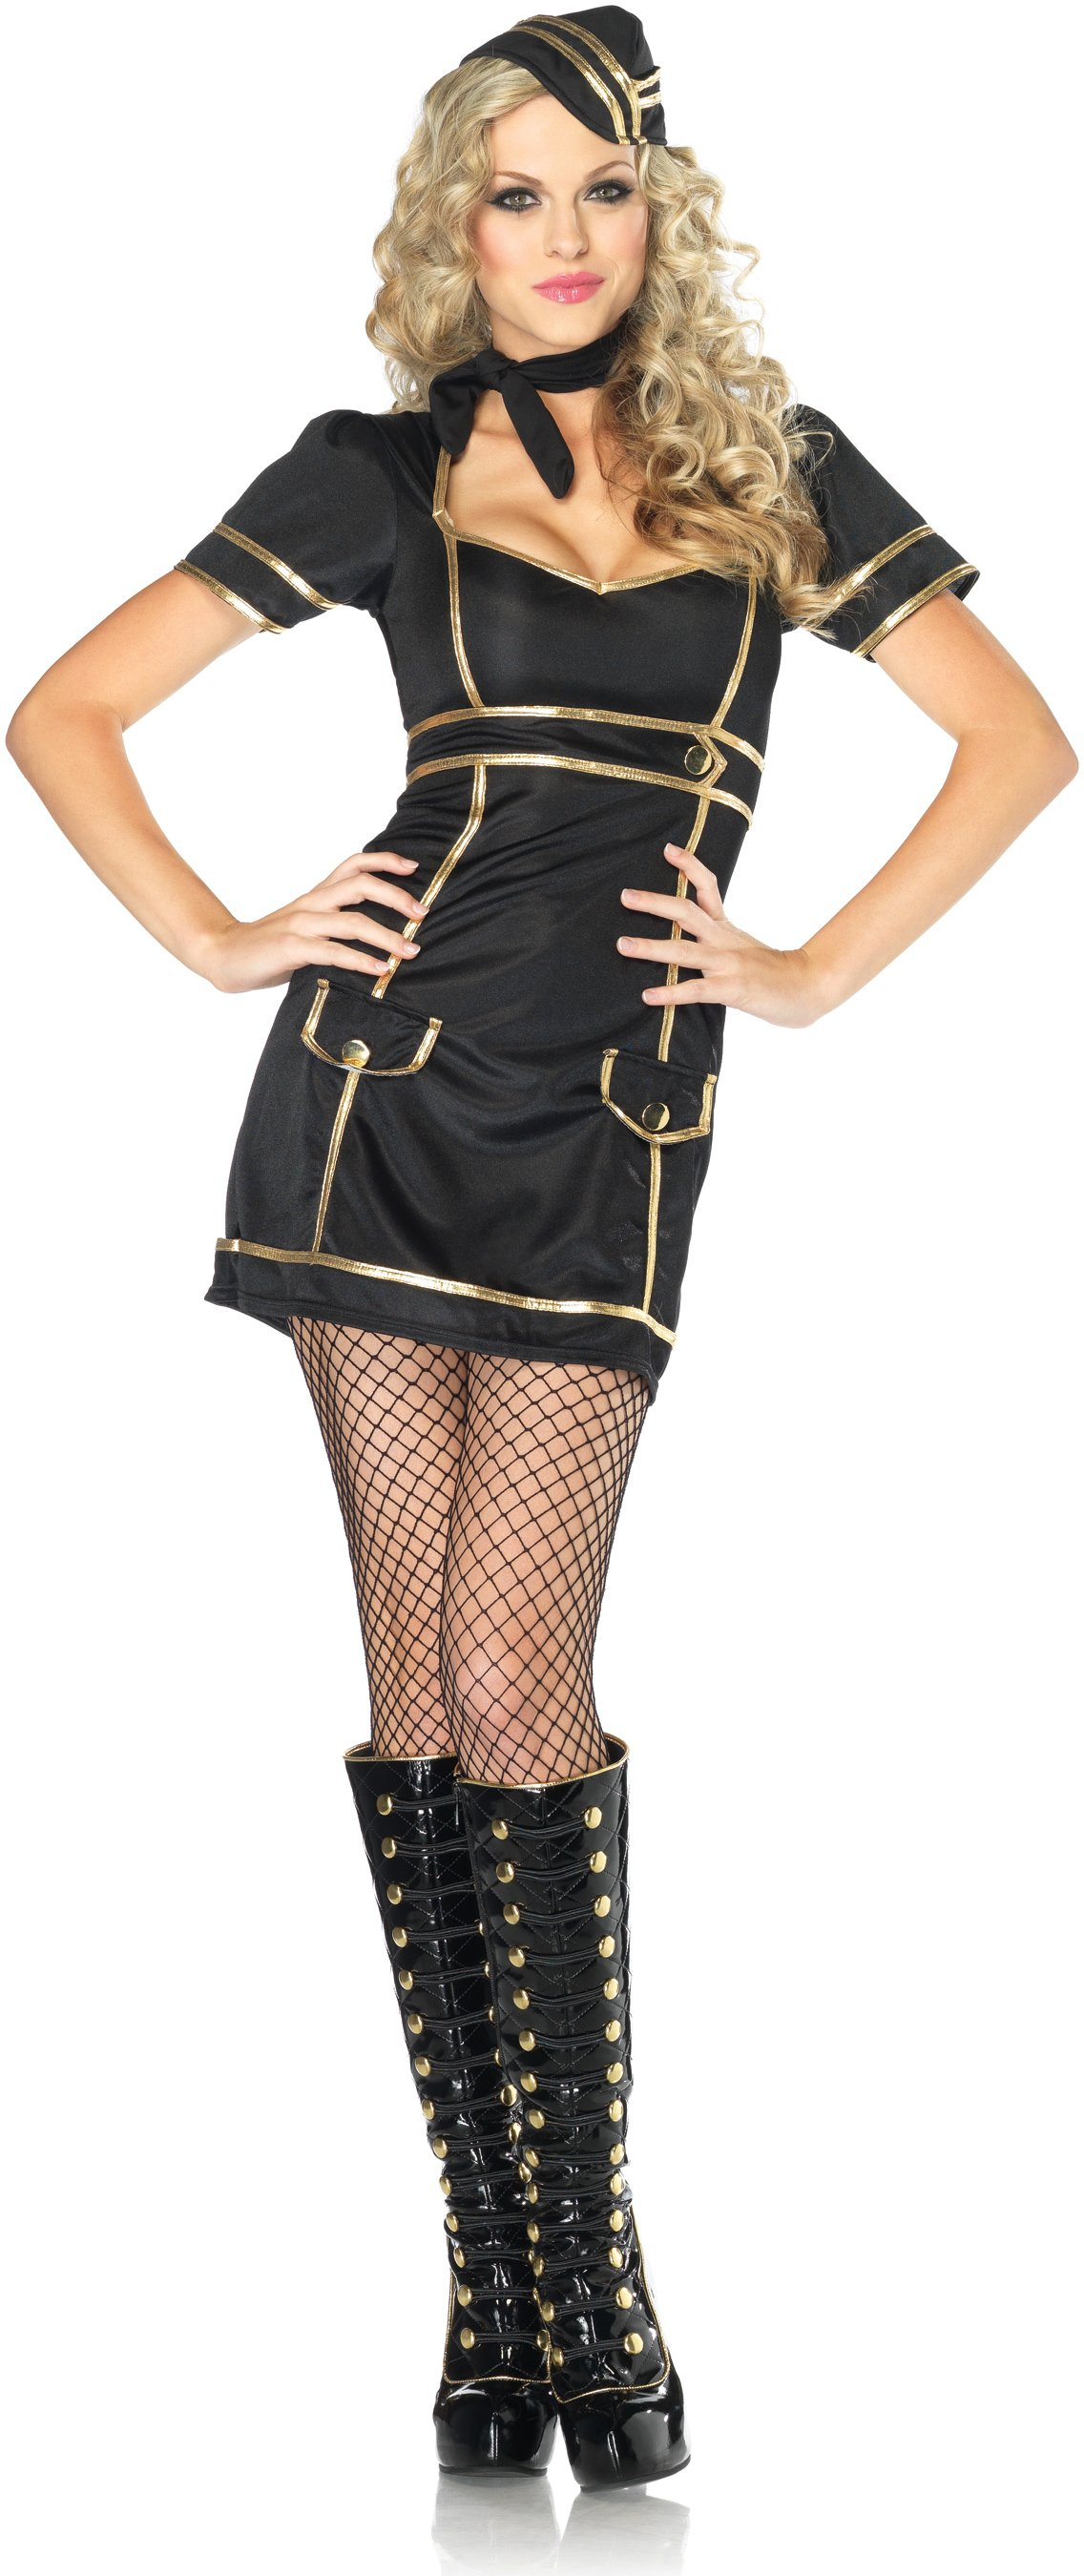 Sultry Stewardess Adult Costume